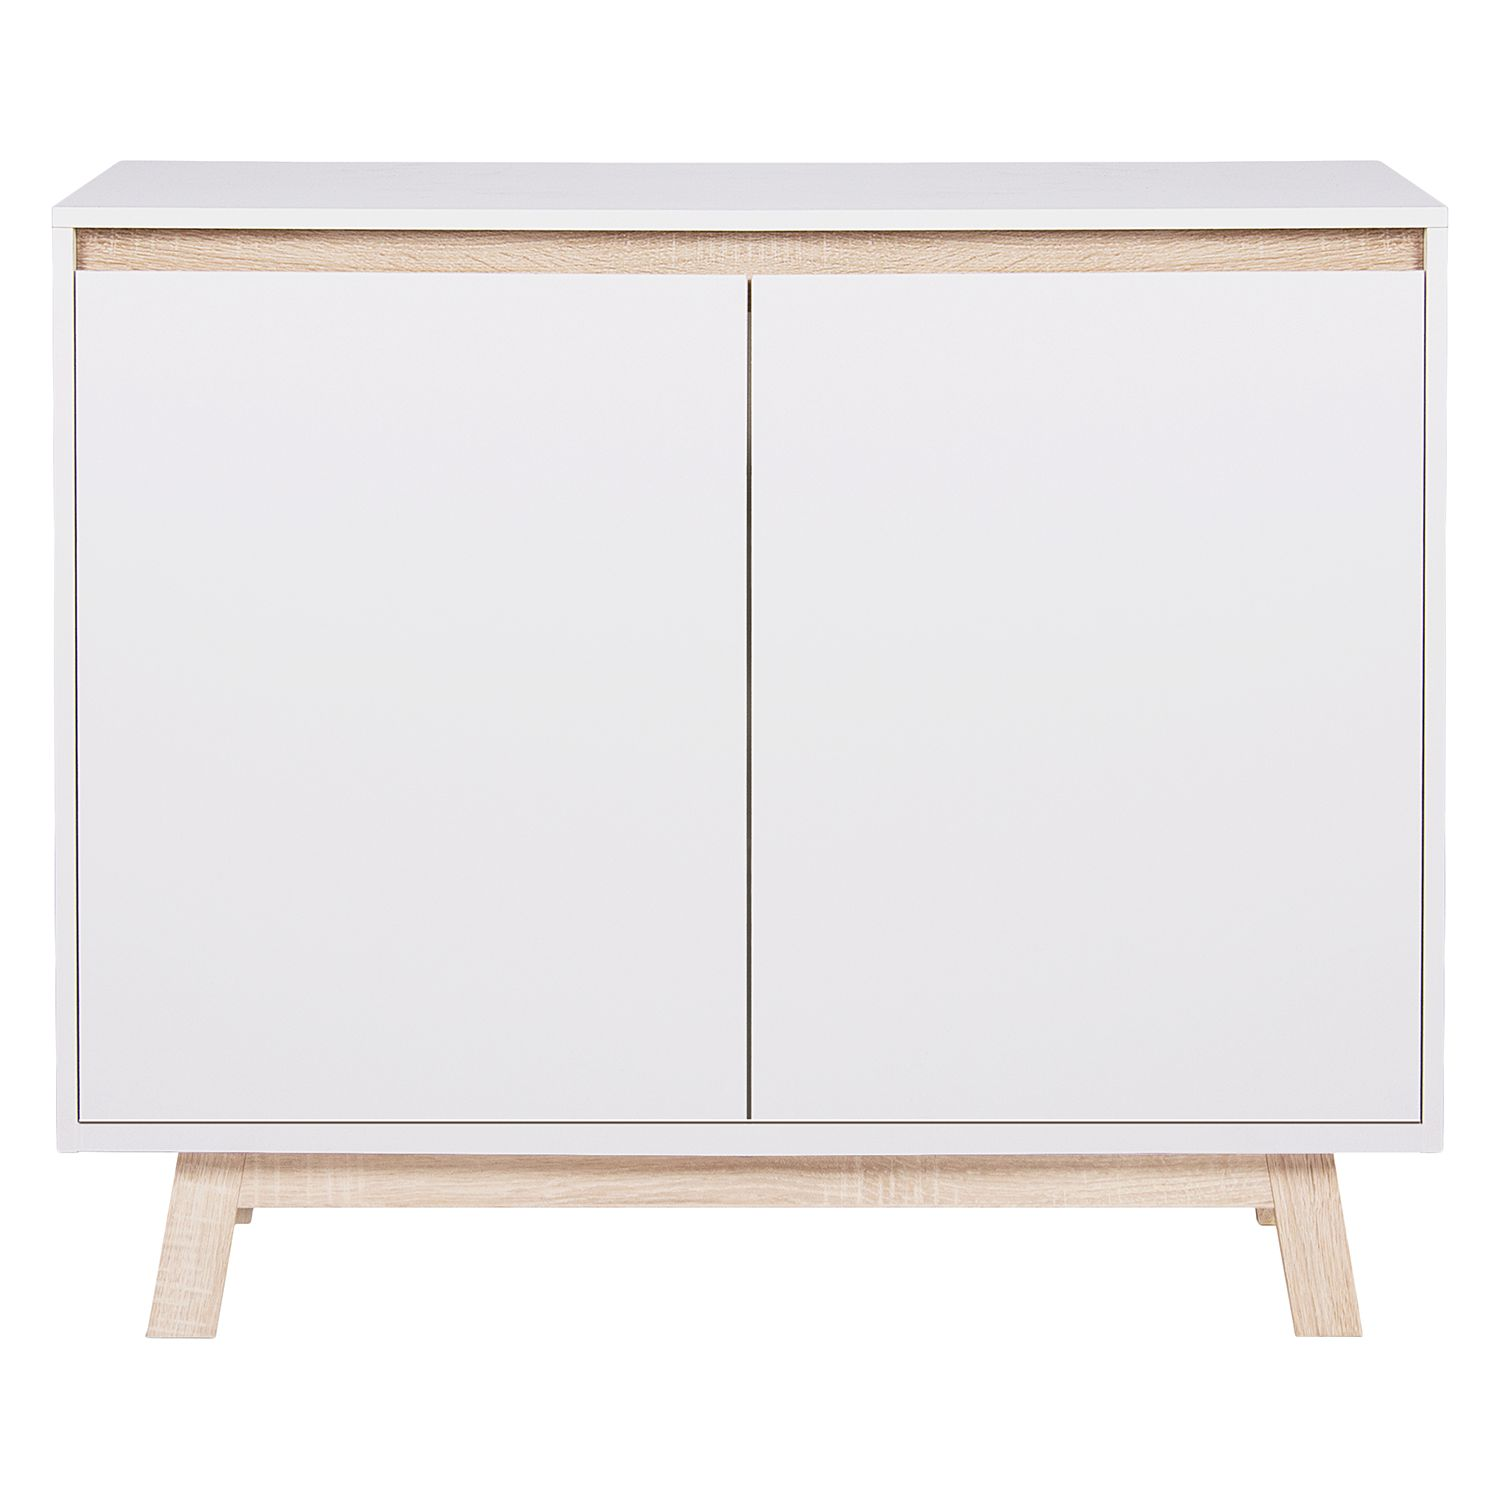 Commode Storberg I - Blanc mat / Imitation chêne Sonoma, mooved